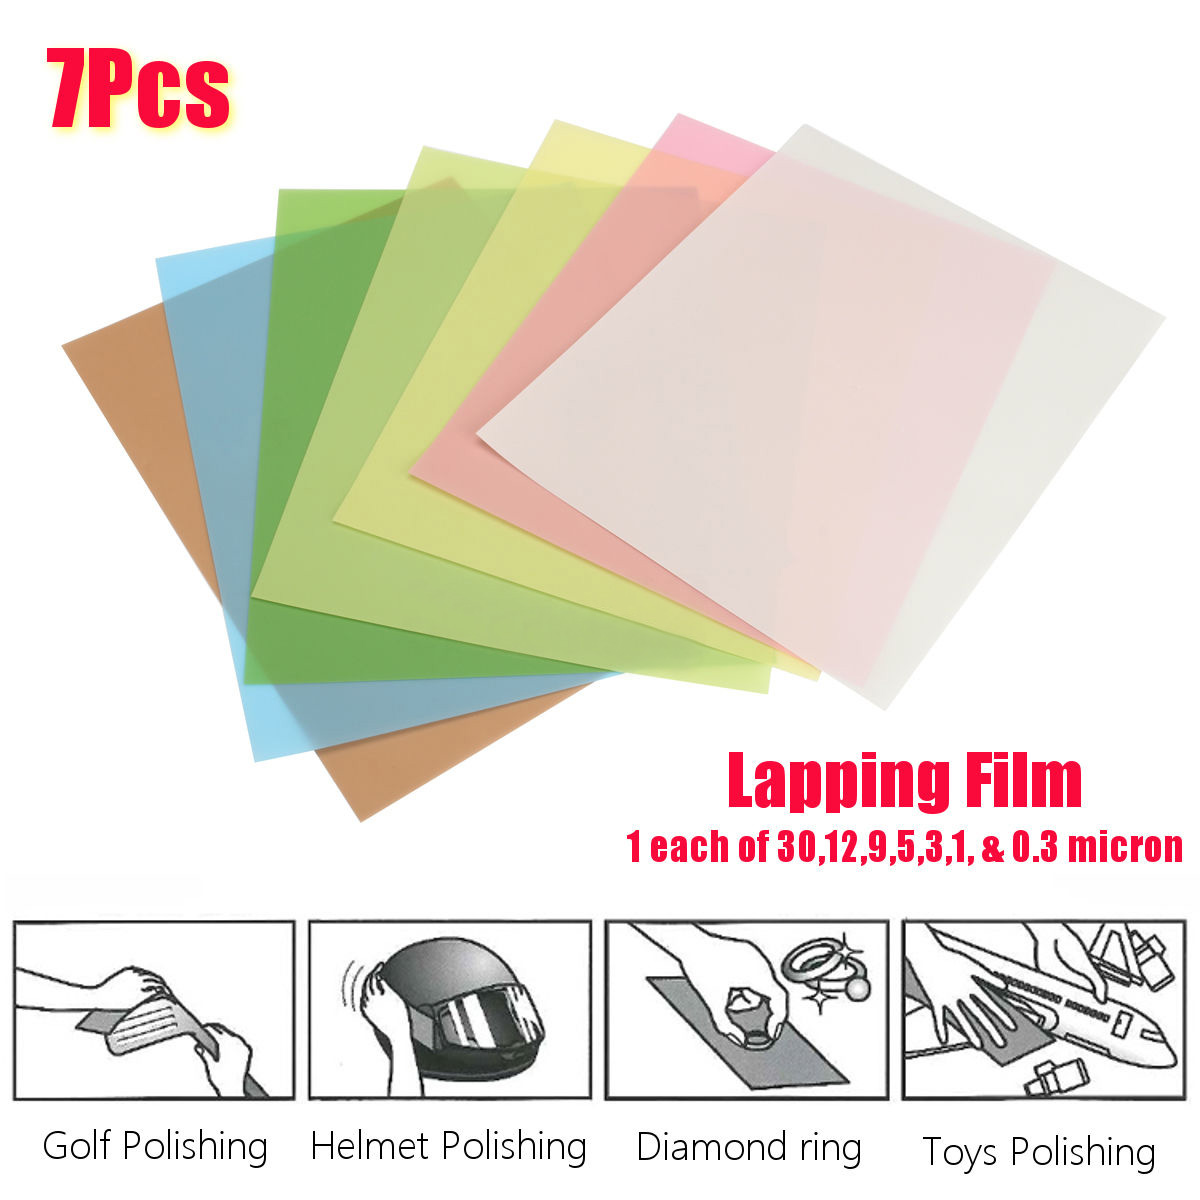 Best 7x Fine Polishing Lapping Film Sheets Abrasive 1500~12000 Grits For Jewelry Gem Stones Polish Tool Accessories